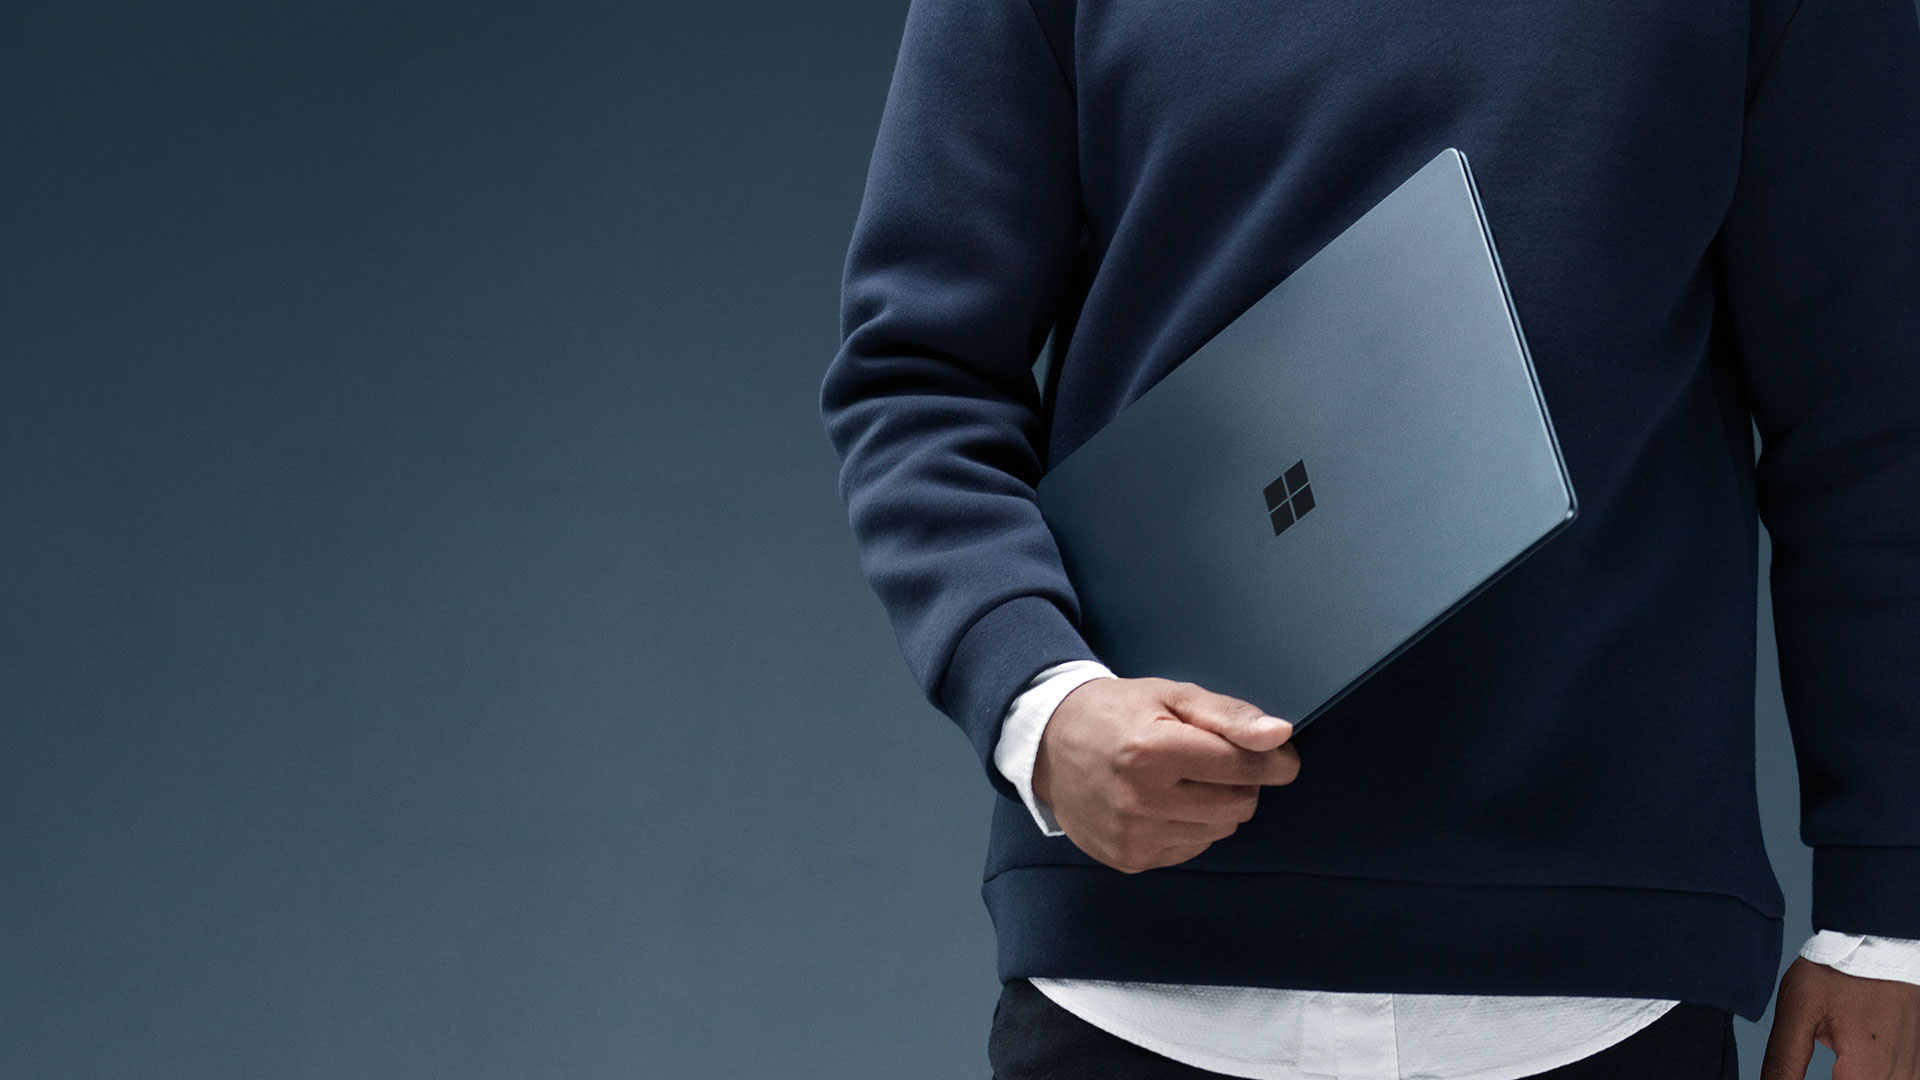 Mann mit Surface Laptop in Kobaltblau